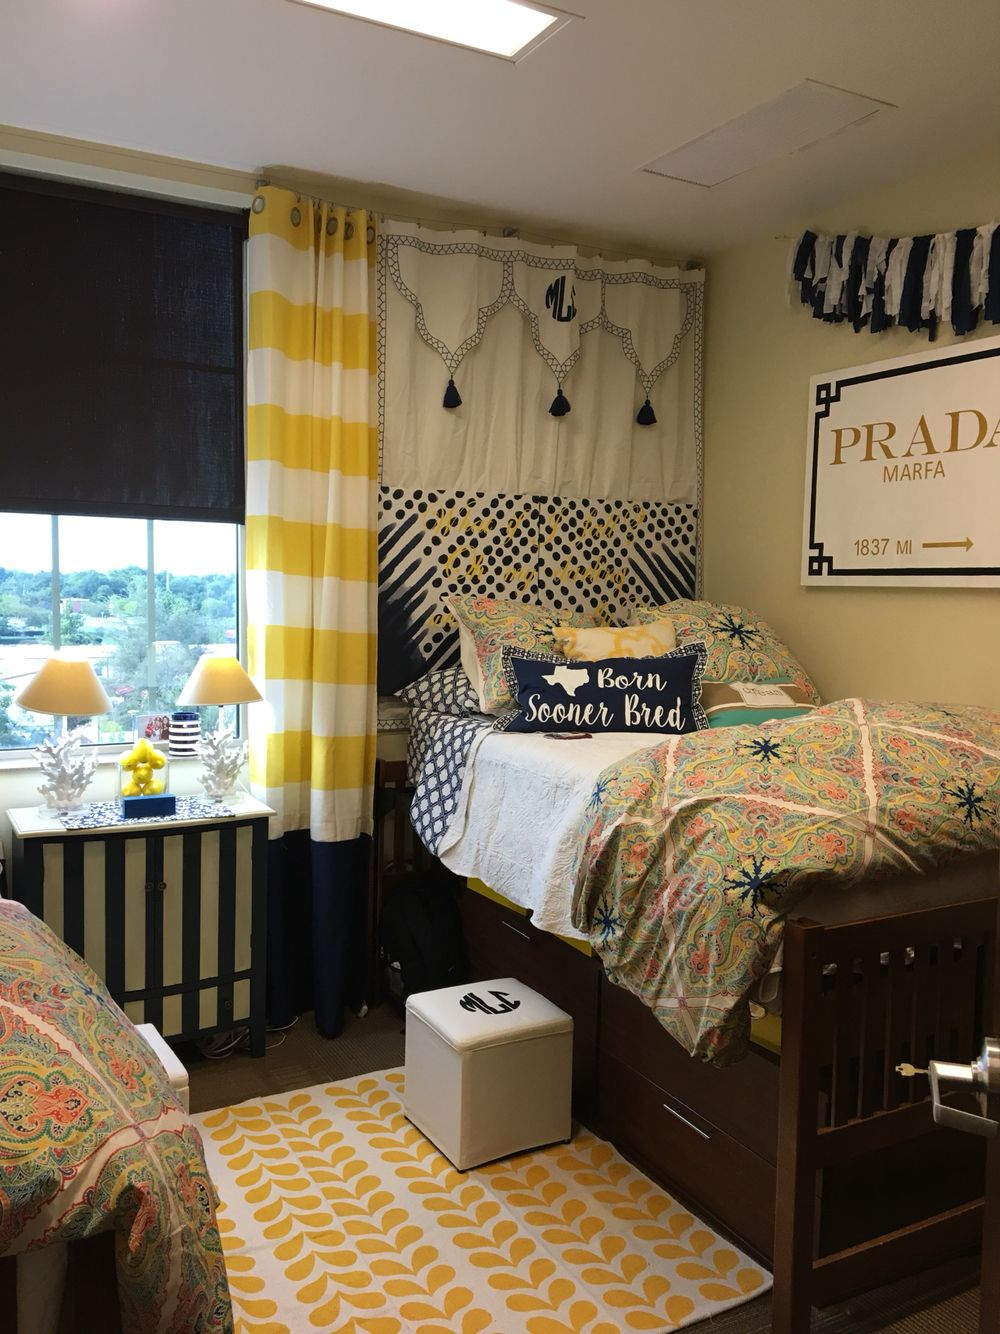 Dorm Room Headboards: Carsons Dorm Room With Painted Canvas, Silhouette